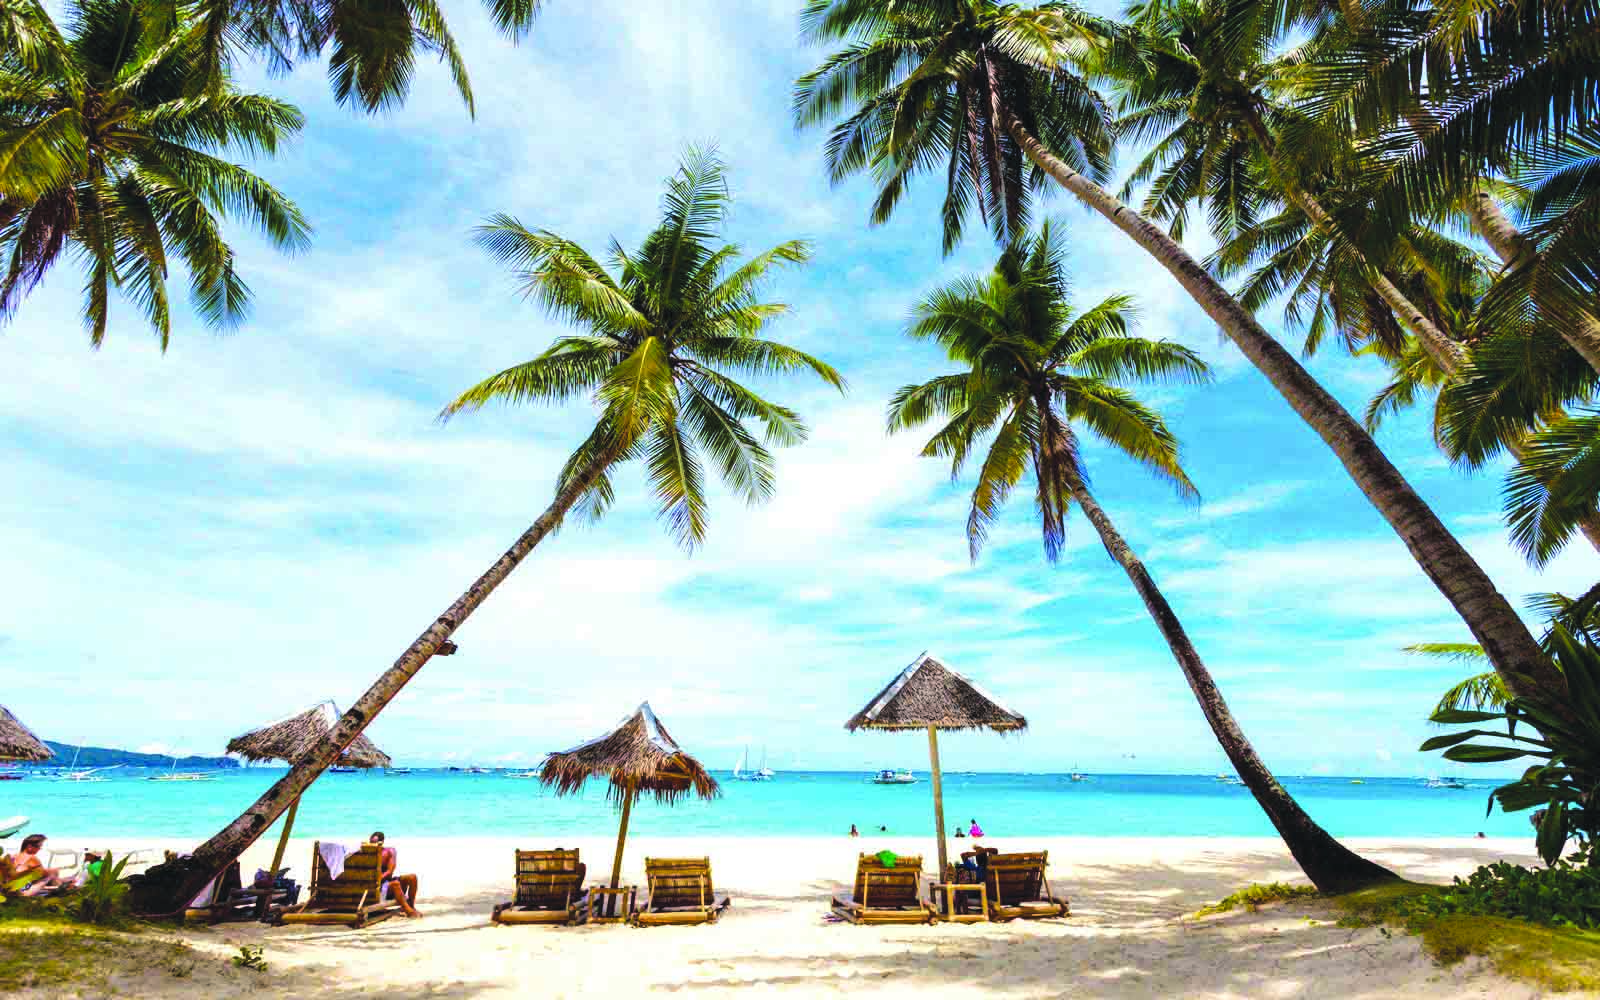 Sugar Beach travel | Philippines - Lonely Planet